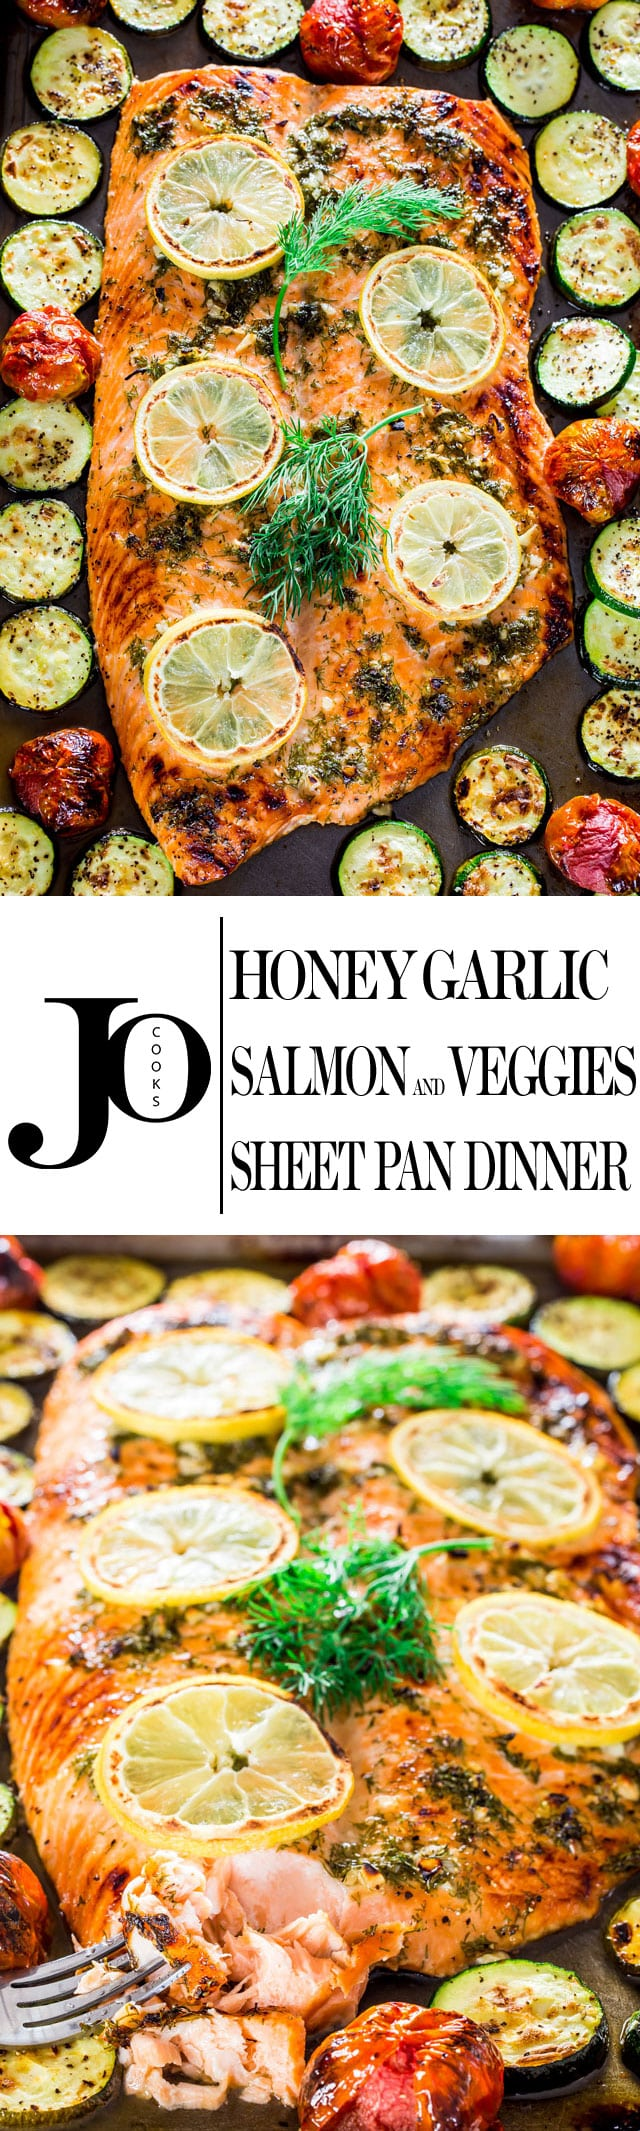 This Honey Garlic Salmon and Veggies Sheet Pan Dinner is about as easy as it gets to get dinner on the table in 30 minutes and the cleanup is a cinche! www.jocooks.com #sheetpandinner